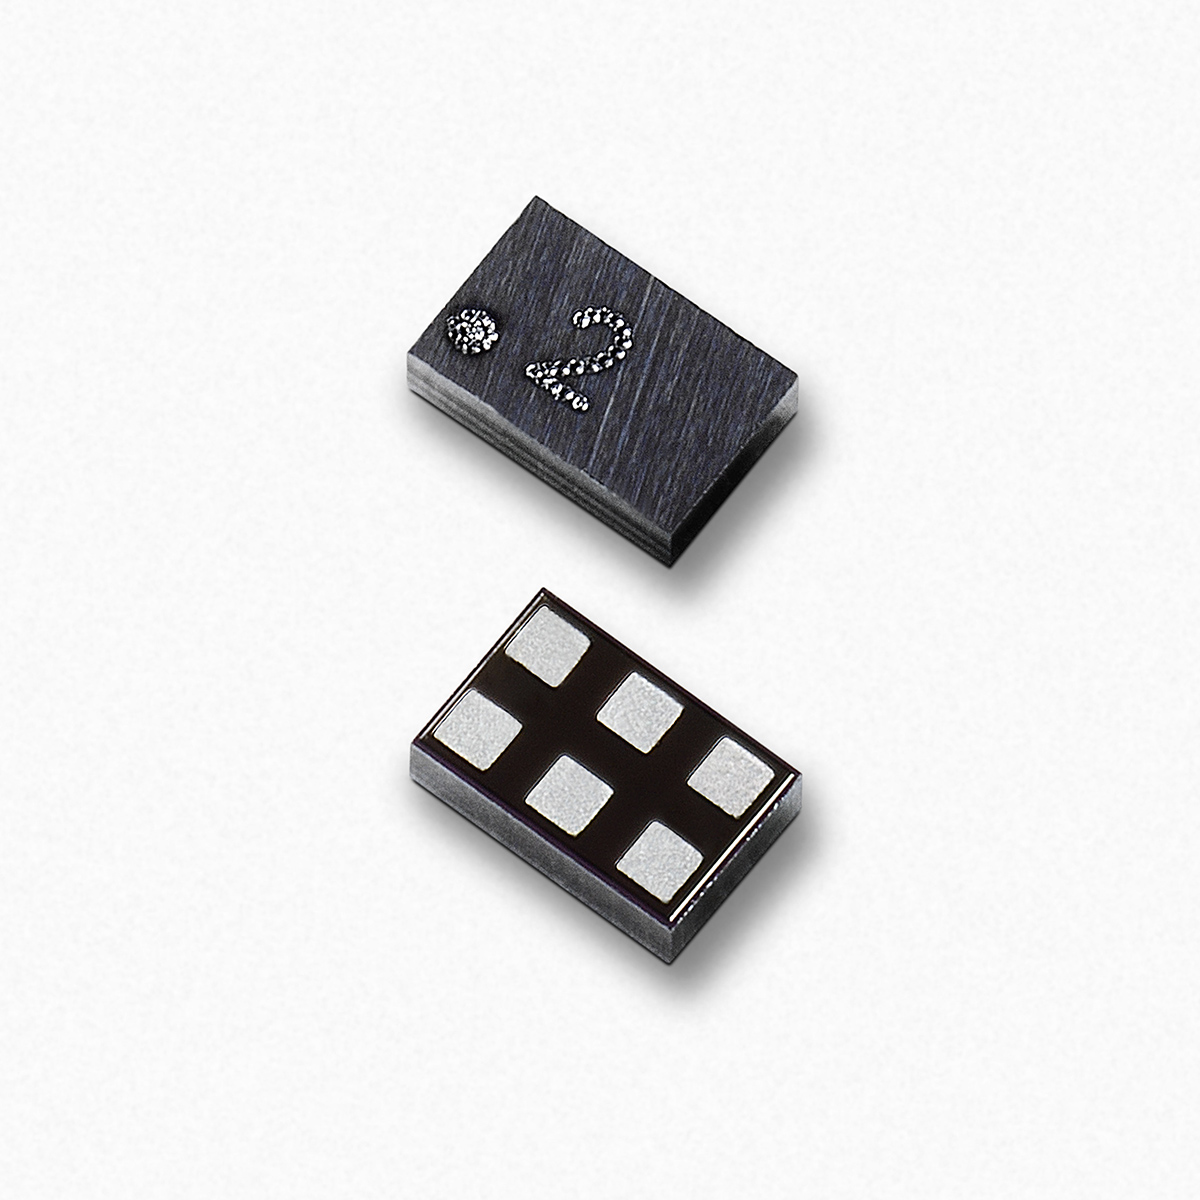 TVS Diode Array from Littelfuse Provides Five Channels of ESD